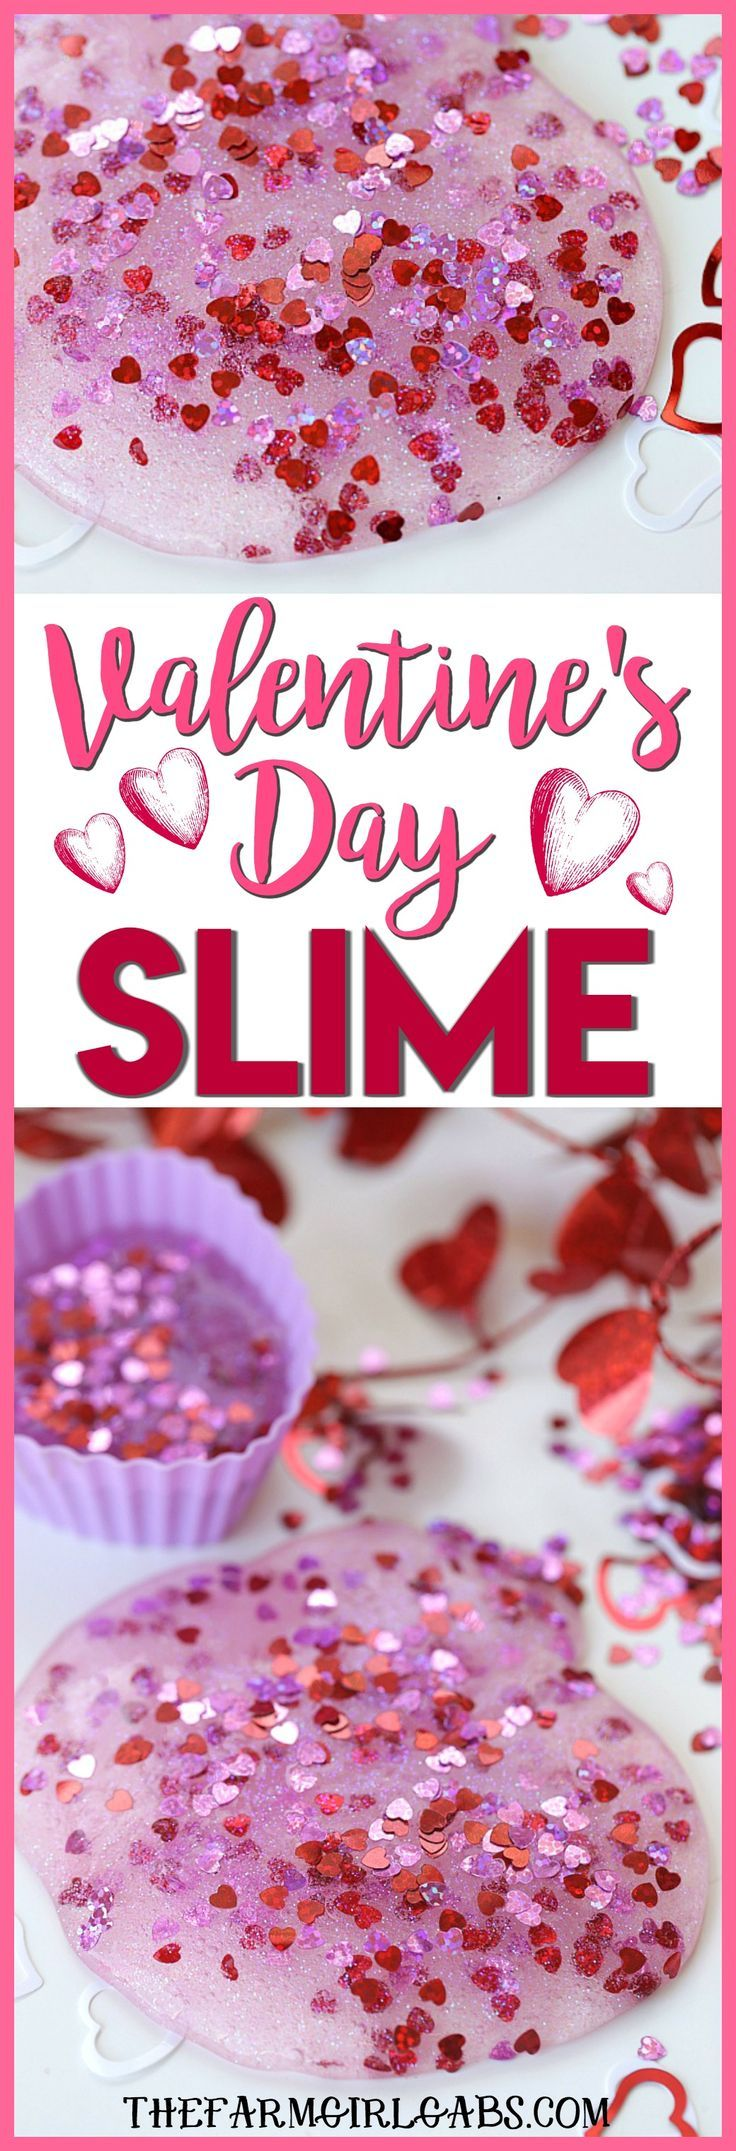 DIY Craft: You and yourkids will LOVE making this easy DIY Valentines Day Slime project. This fun craft makes a great party favor too! #Slime #ValentinesDay #Crafts #DIY #Kids #KidsCrafts #PartyIdeas